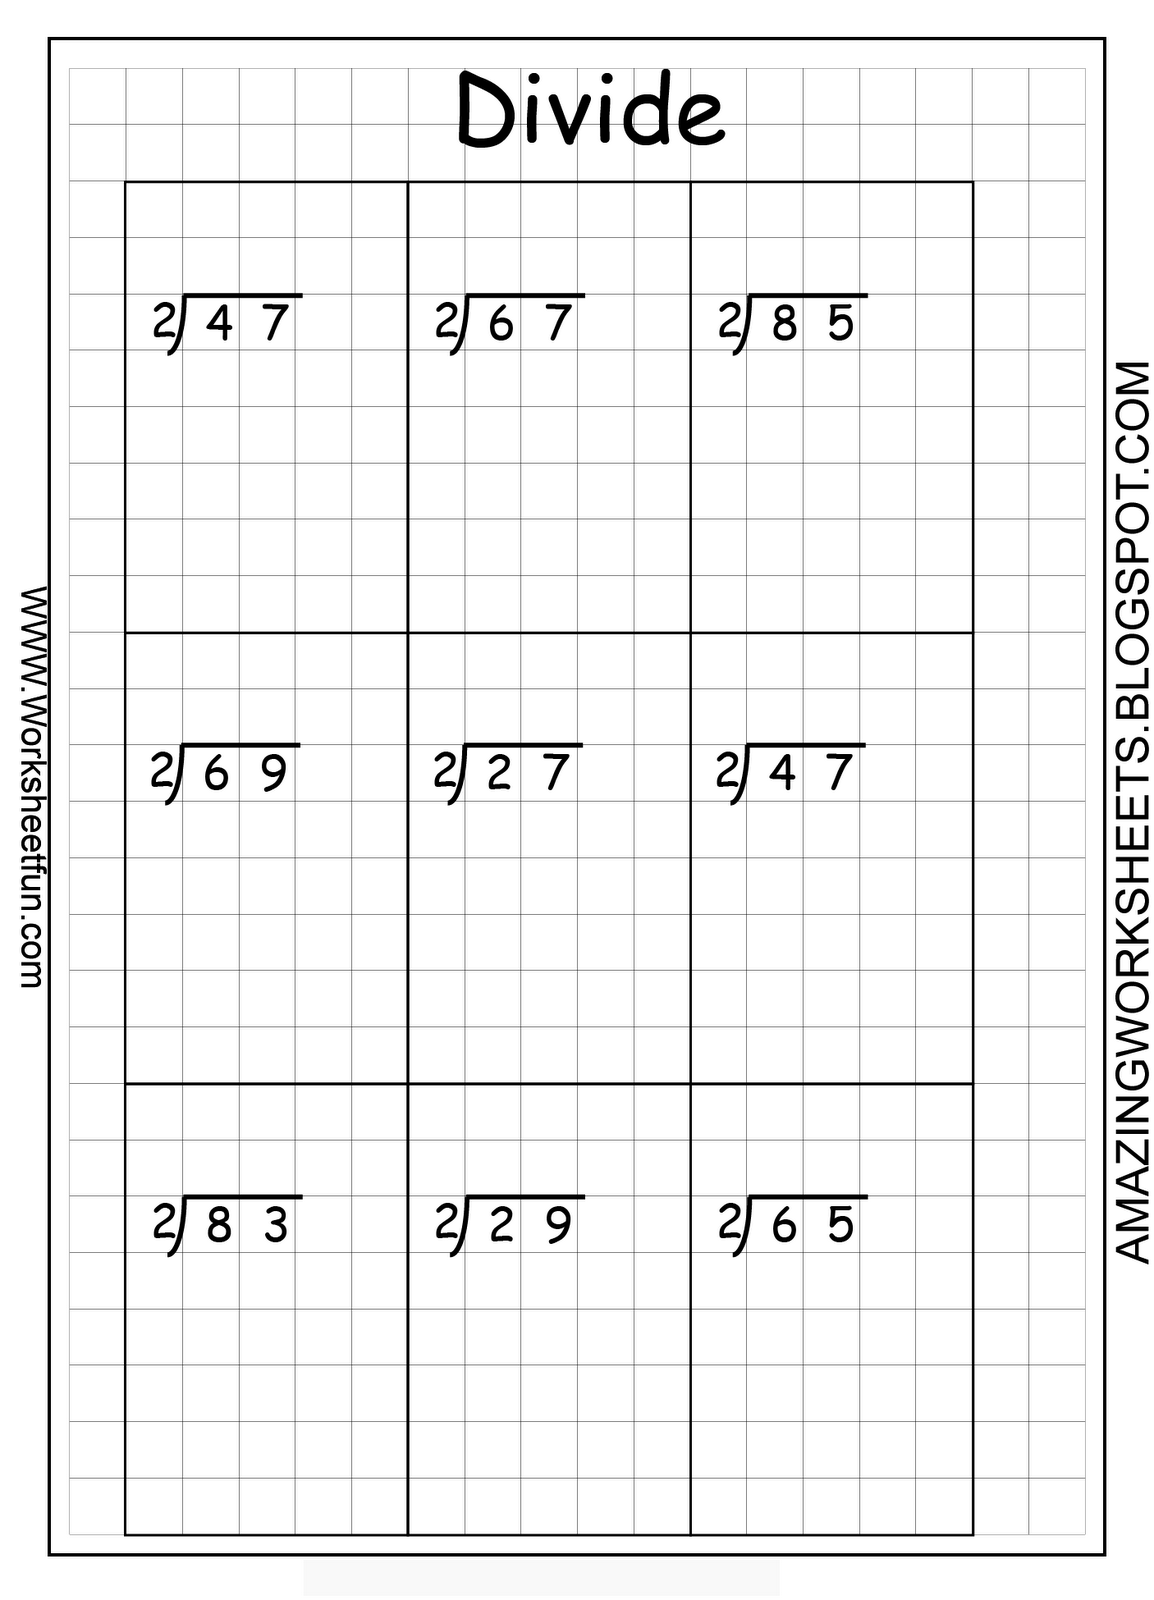 Division Worksheet Math Aids   Printable Worksheets and Activities for  Teachers [ 1600 x 1154 Pixel ]